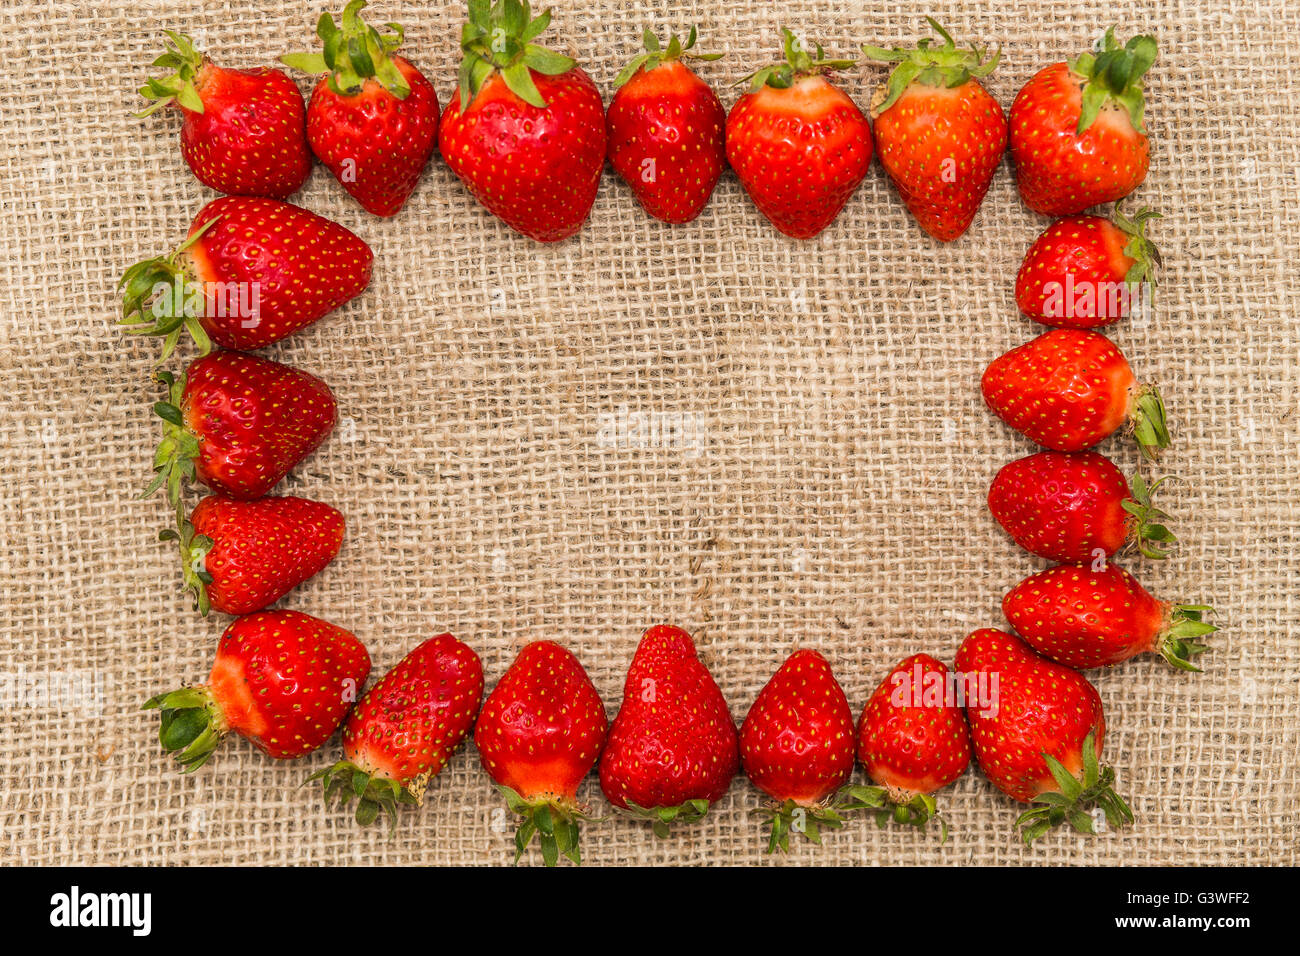 Frame made from fresh strawberries. Strawberries on the sackcloth. Decorative frame idea. Greeting card idea. - Stock Image